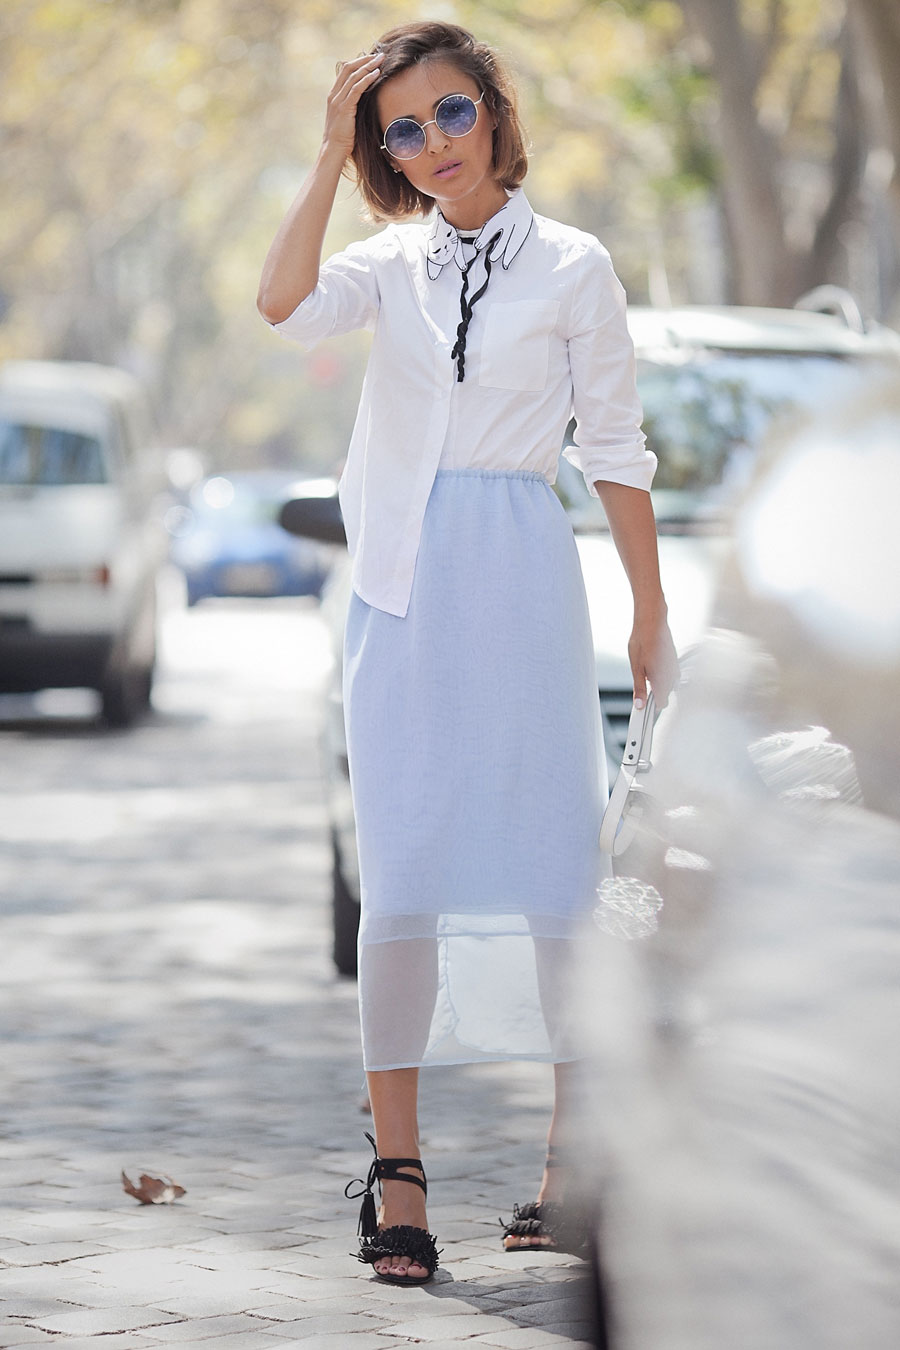 blue pencil skirt outfit, white shirt outfit, Ellena Galant, Елена Галант,